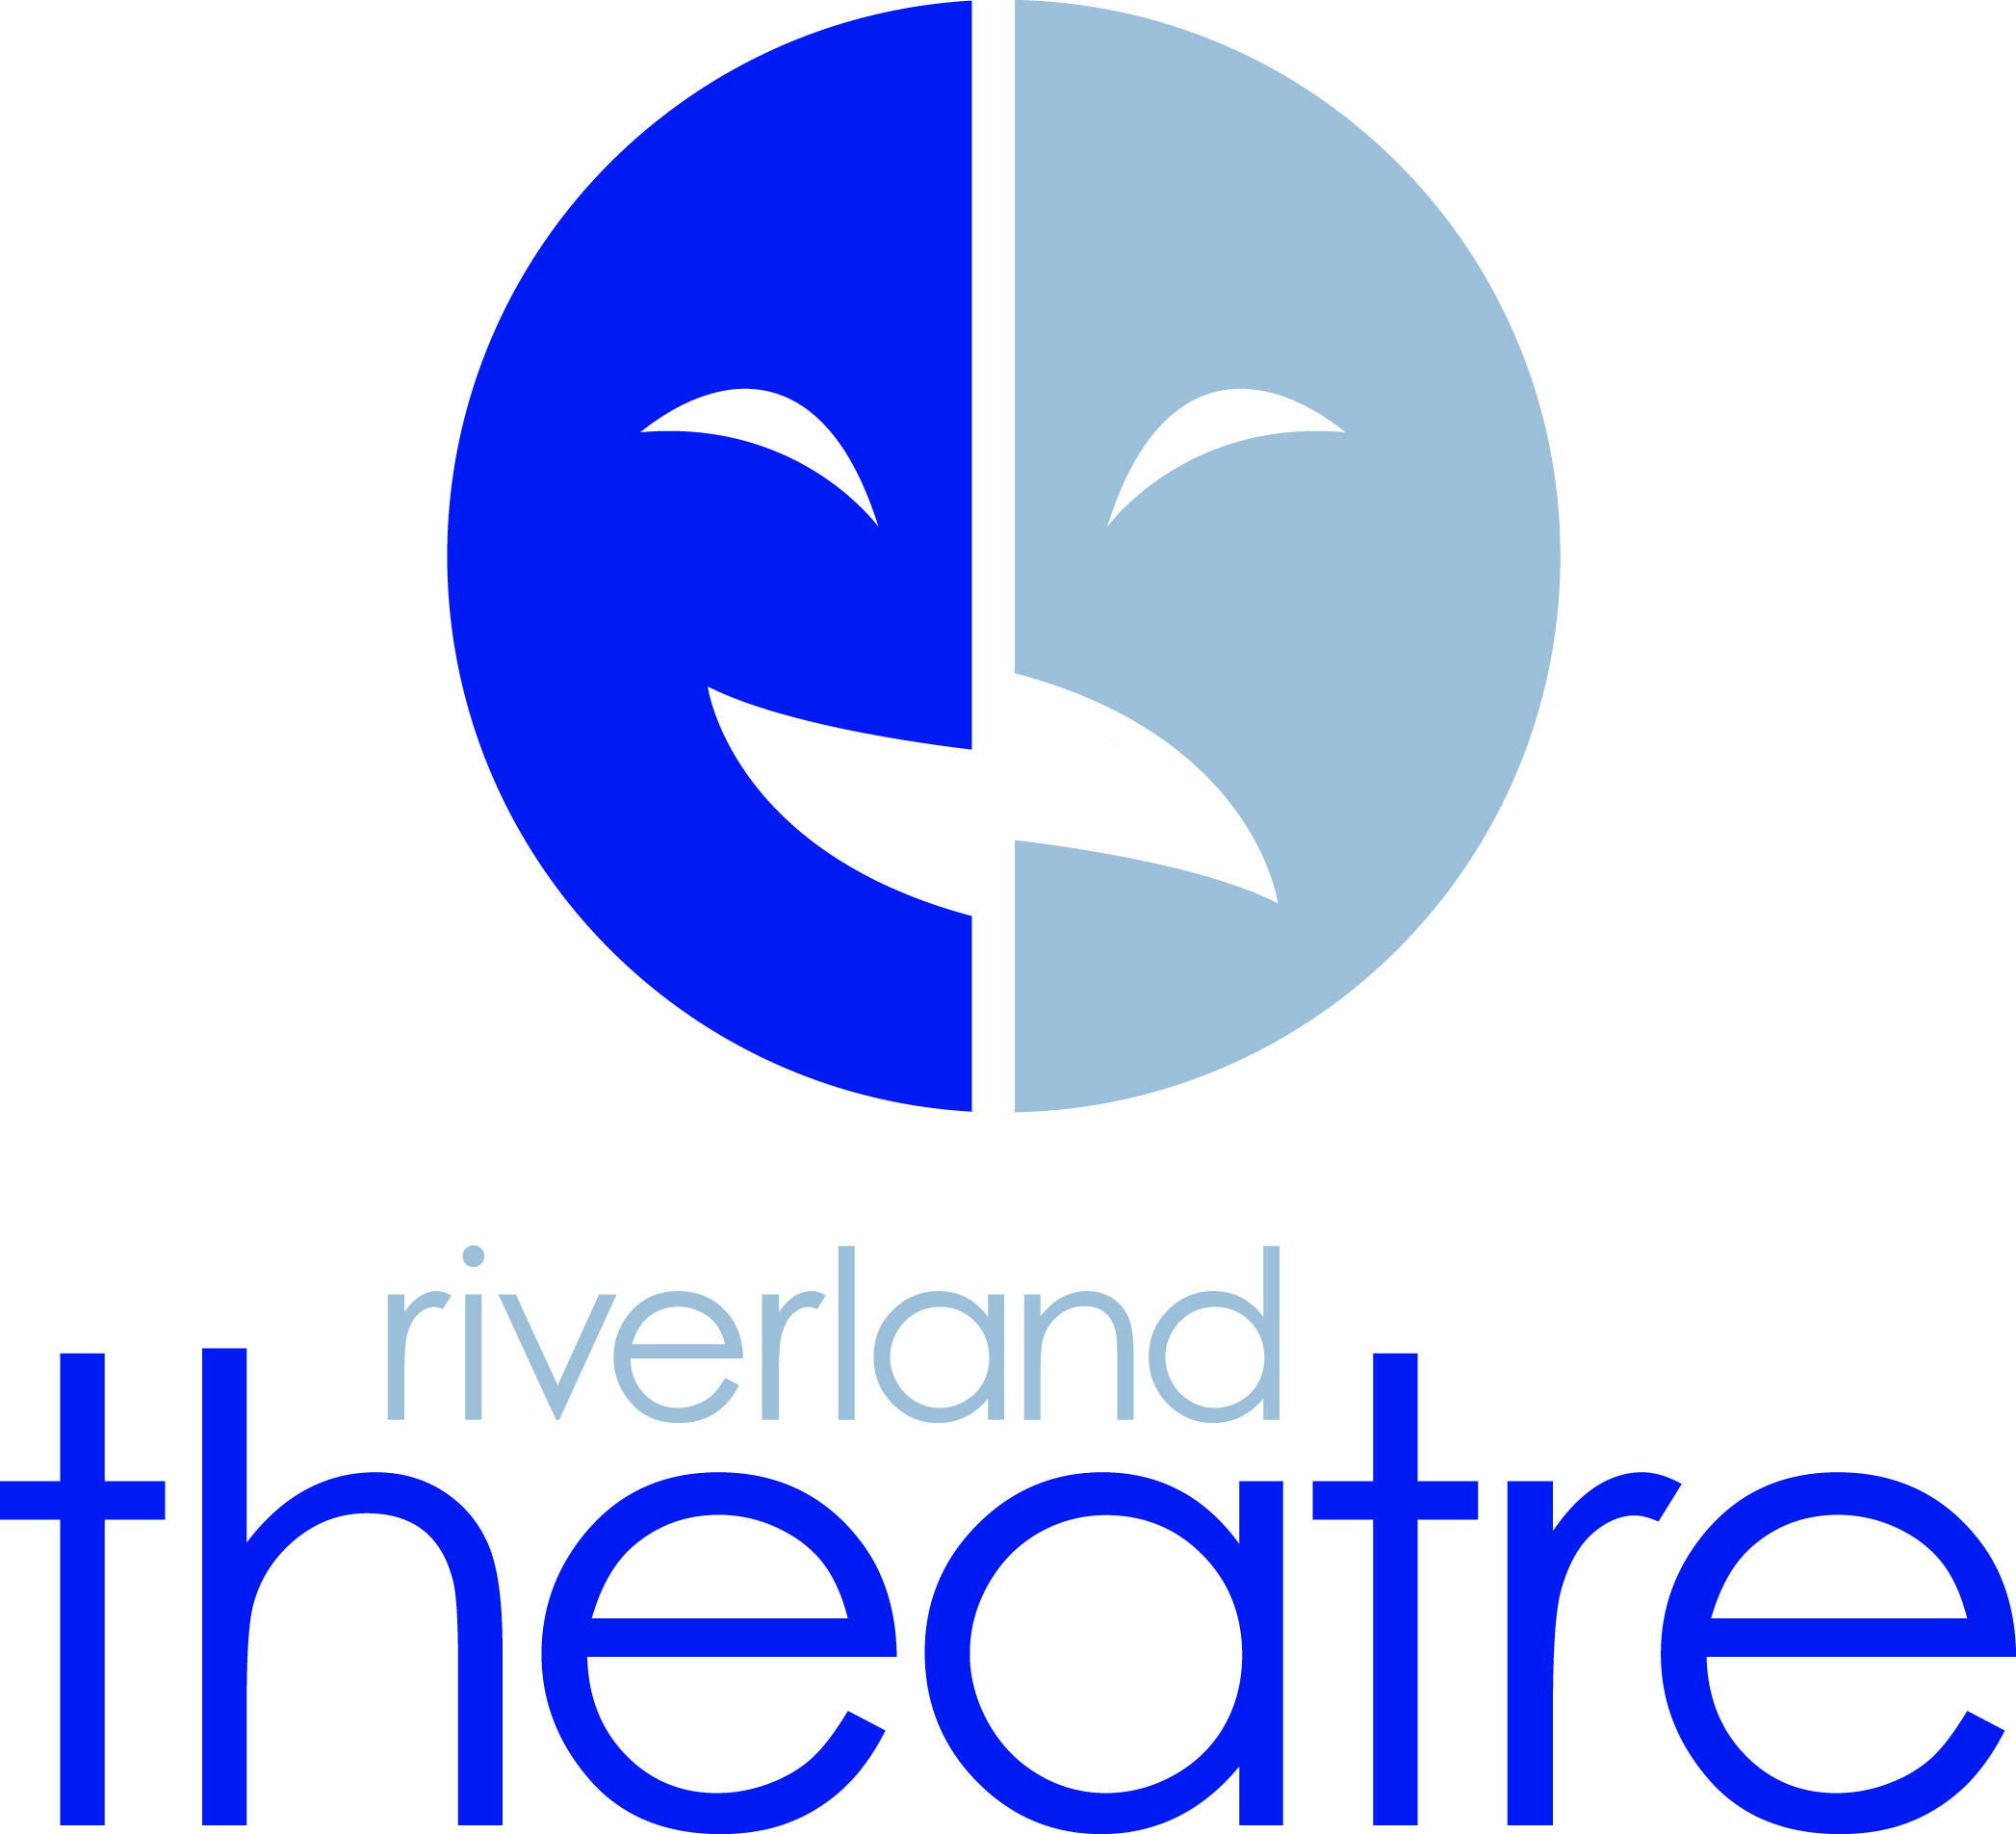 theatre logos google search logos pinterest logo